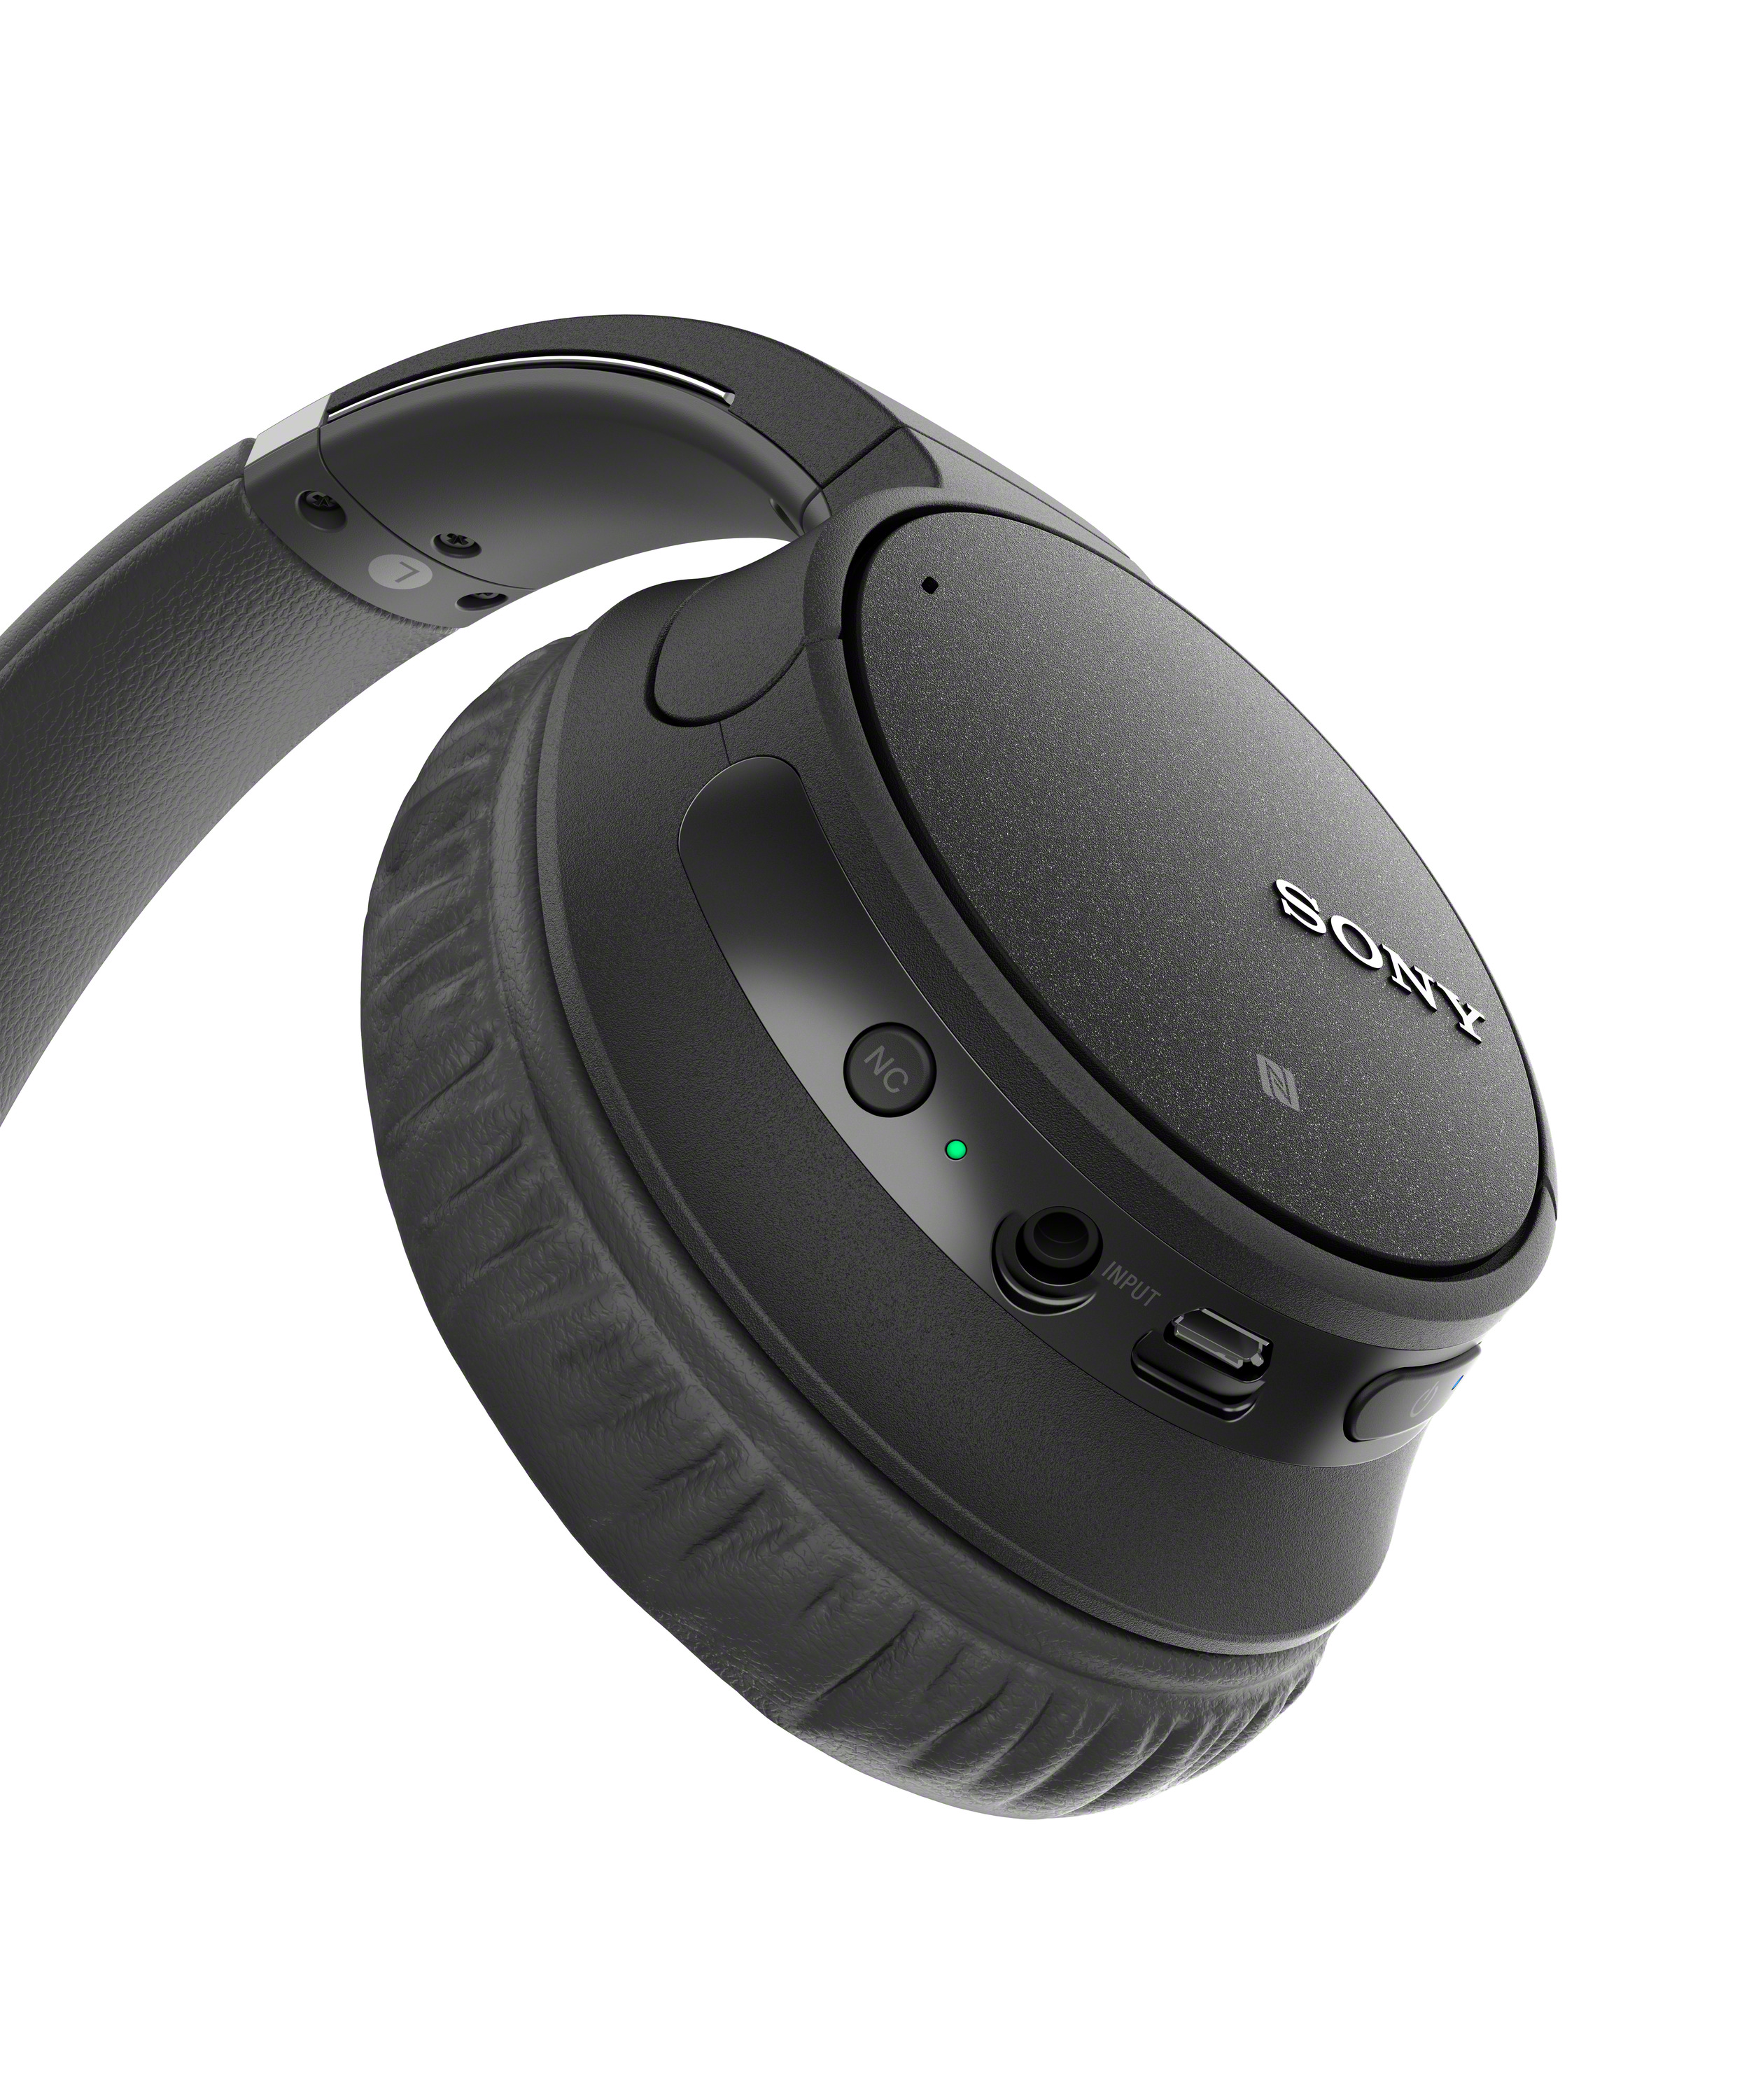 Sony-WH-CH700N-Wireless-Bluetooth-Noise-Canceling-Over-the-Ear-Headphones thumbnail 6